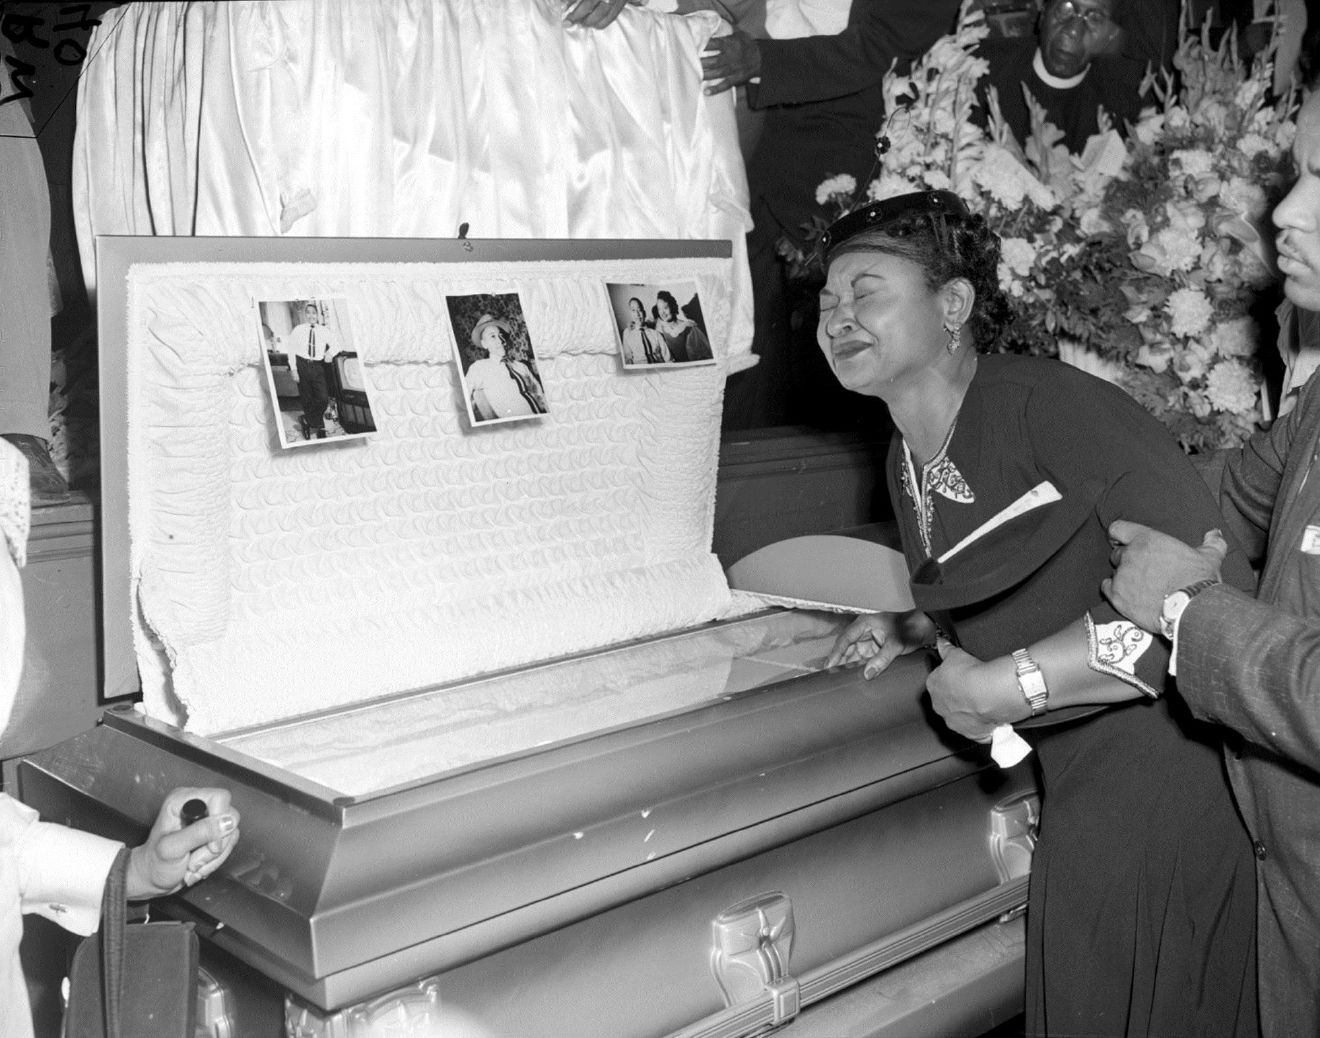 FILE- In this Sept. 6, 1955 file photo, Mamie Till Mobley weeps at her son's funeral in Chicago. (AP Photo/Chicago Sun-Times) /Chicago Sun-Times via AP)